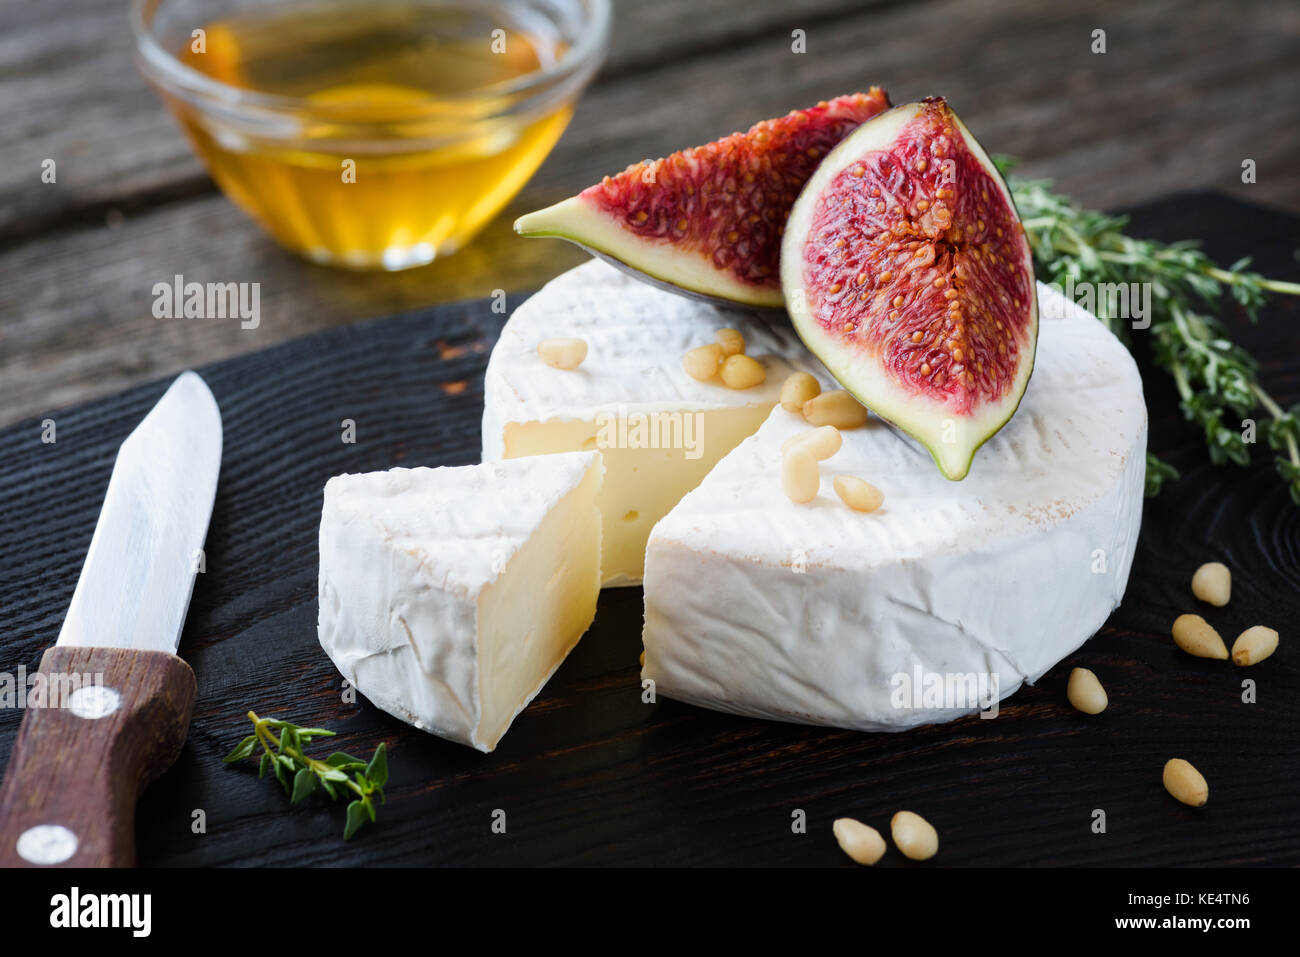 Camembert cheese with figs, honey and pine nuts on dark wooden cutting board. Closeup view - Stock Image